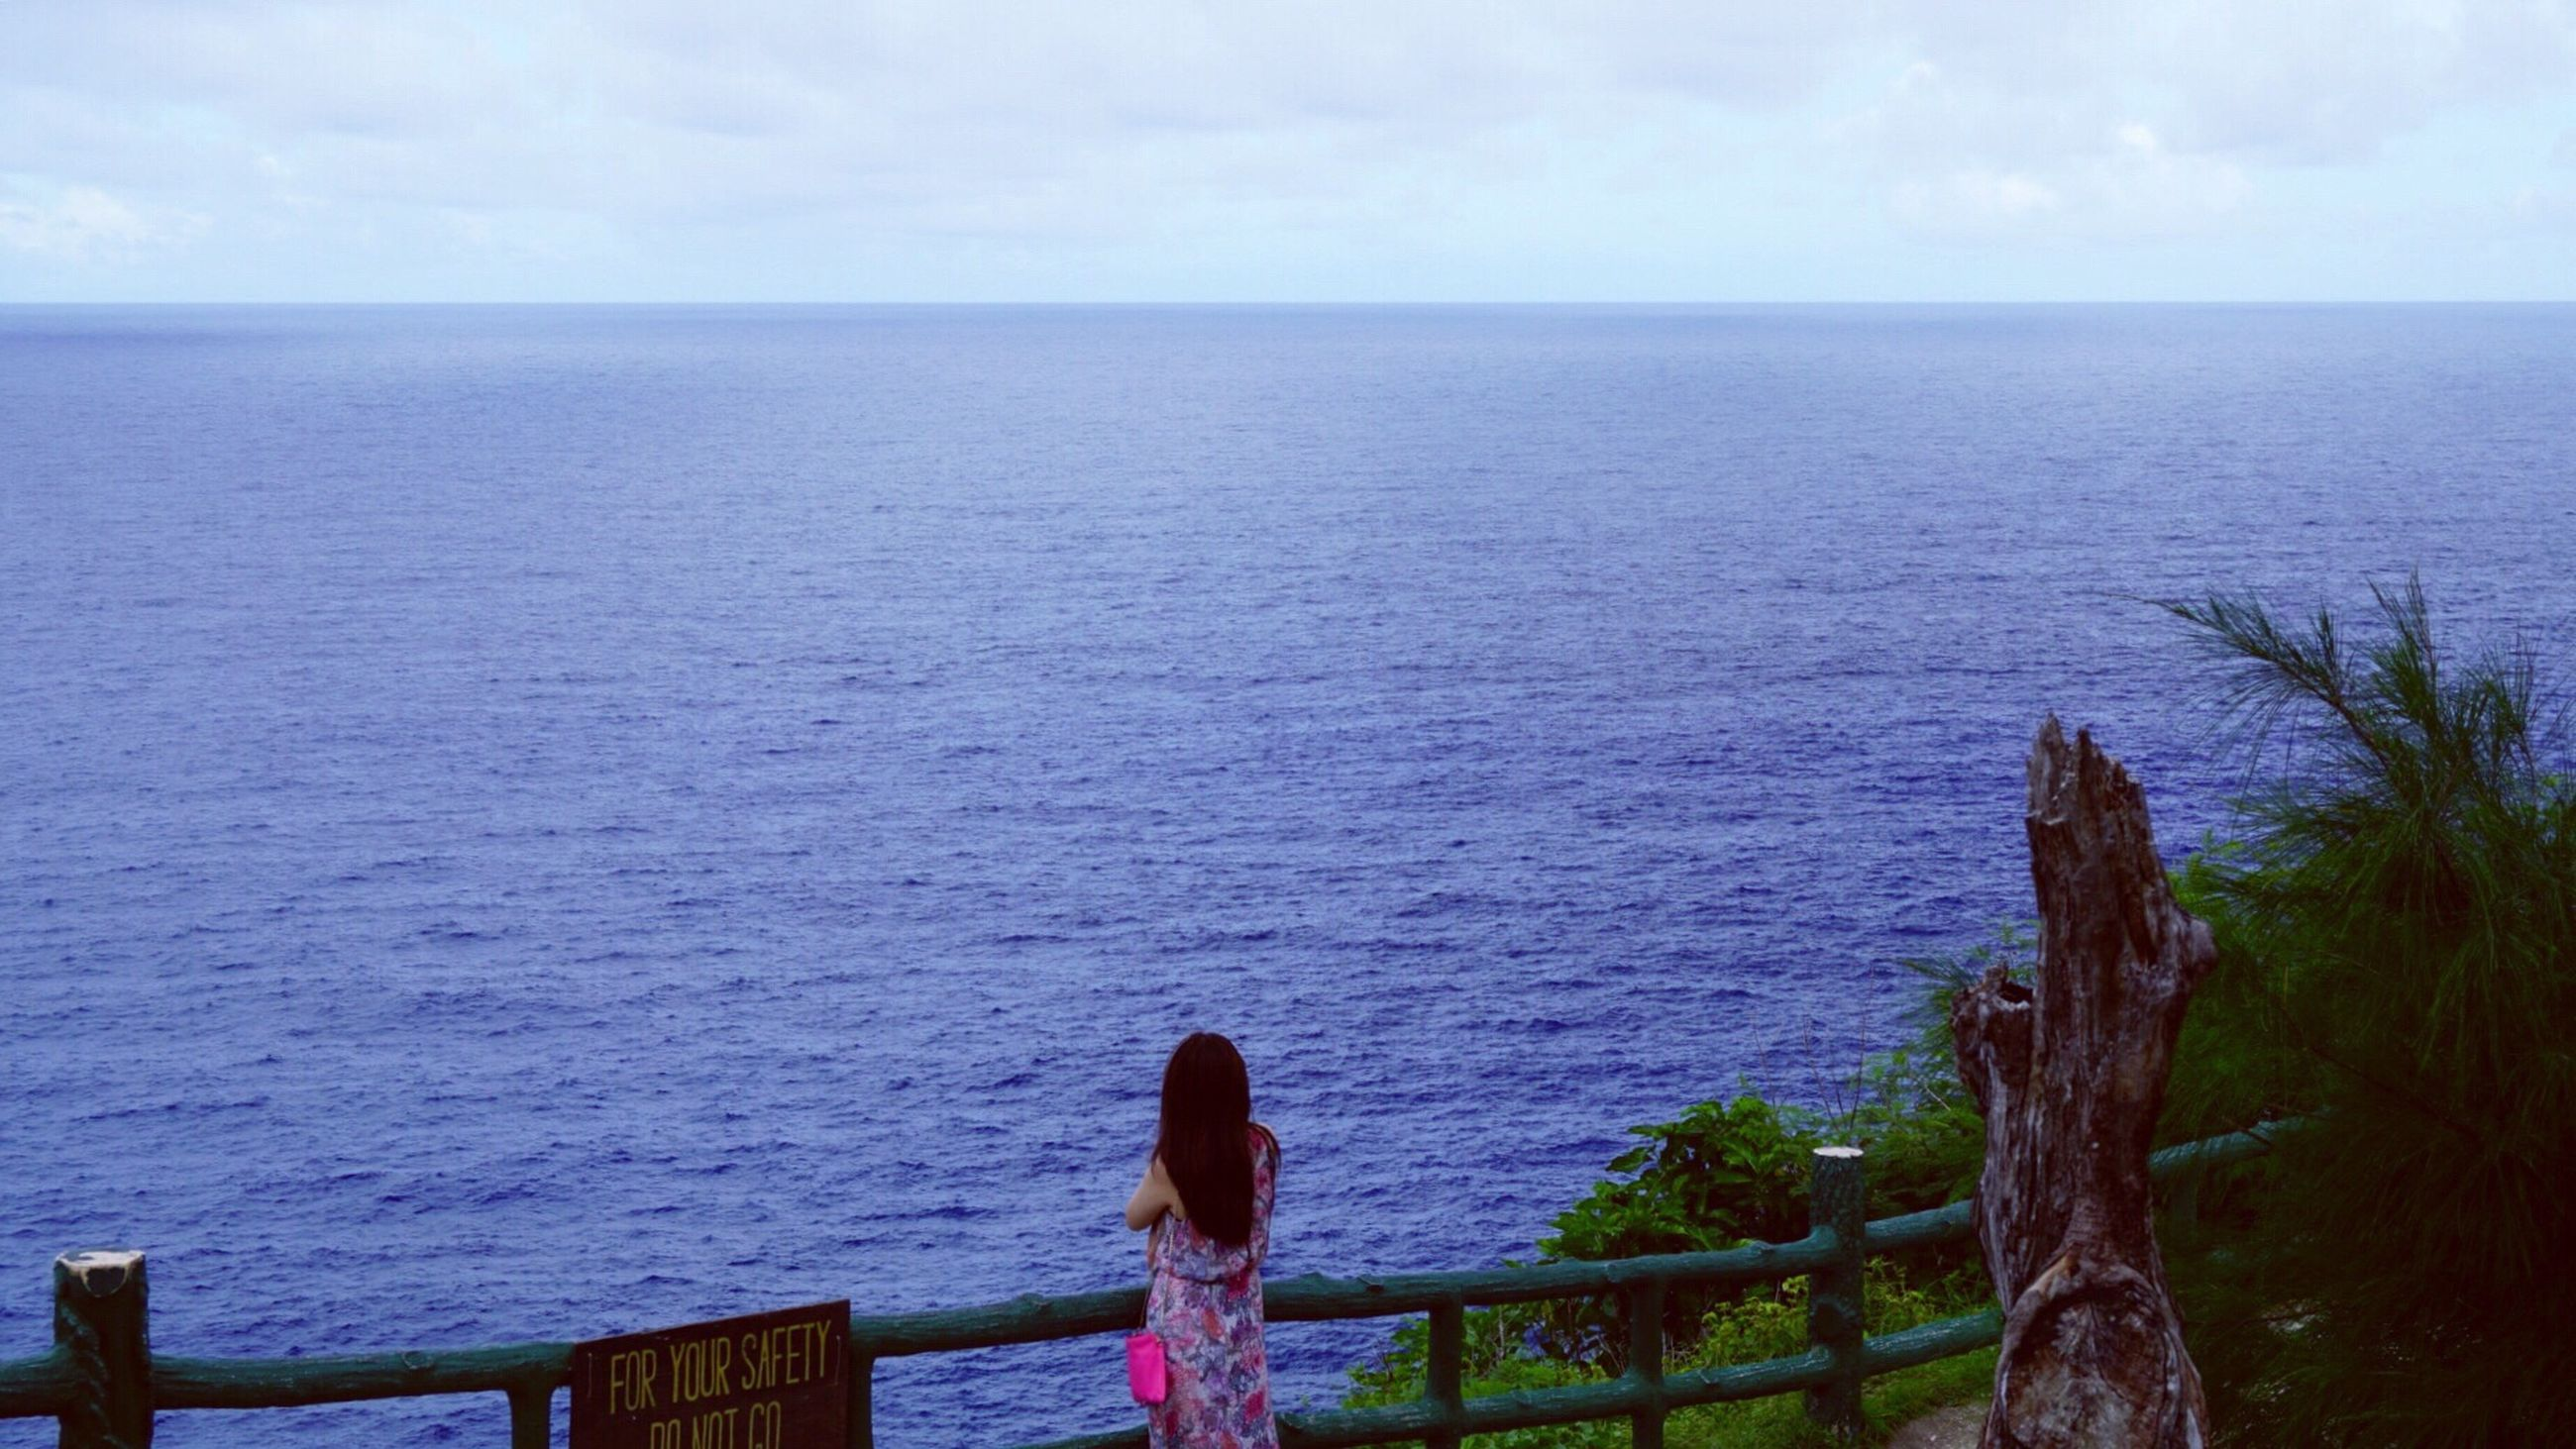 water, sea, horizon over water, tranquil scene, scenics, tranquility, beach, beauty in nature, railing, sky, standing, men, rear view, tourist, seascape, tourism, nature, shore, cloud - sky, hobbies, remote, in front of, blue, vacations, distant, outdoors, day, getting away from it all